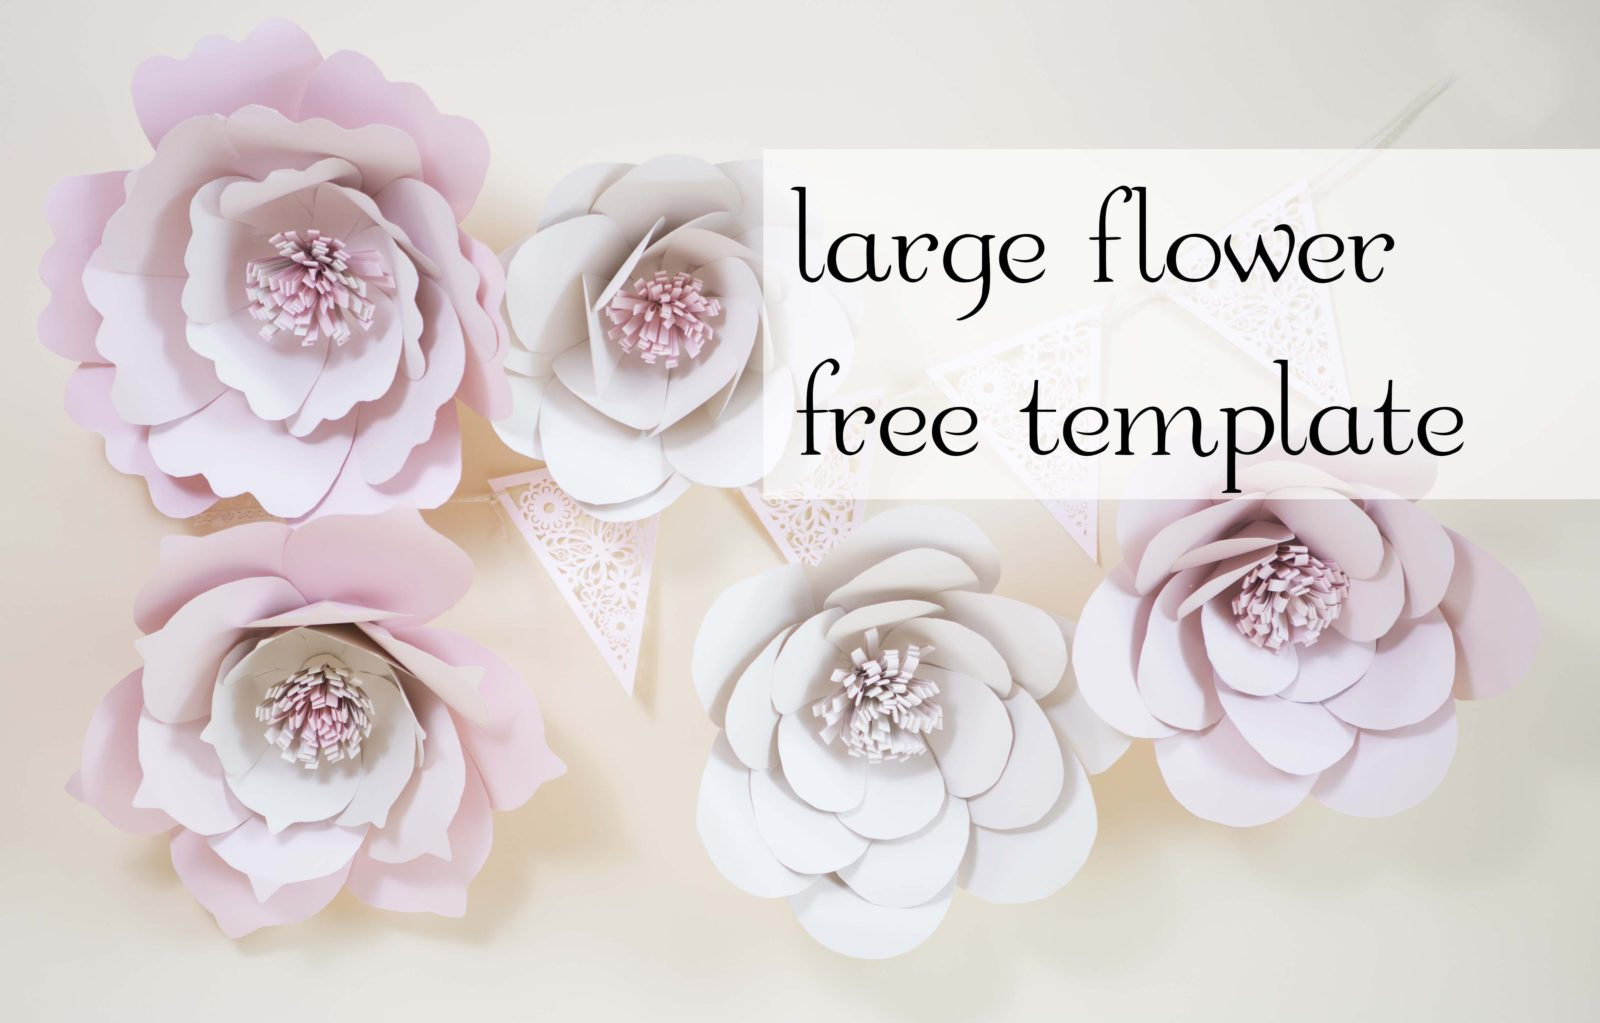 big flower paper template - giant paper flowers free template